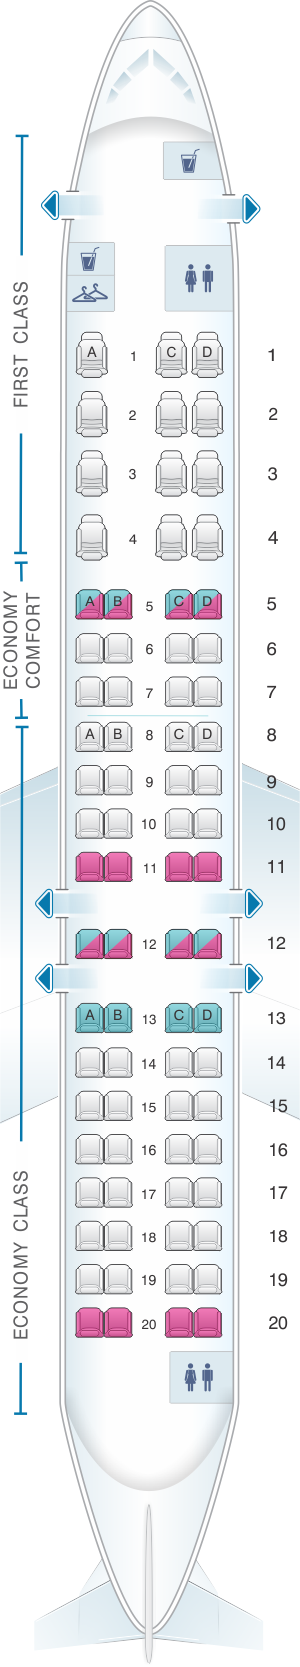 Seat map for Delta Airlines Bombardier Canadair Regional Jet CRJ 900